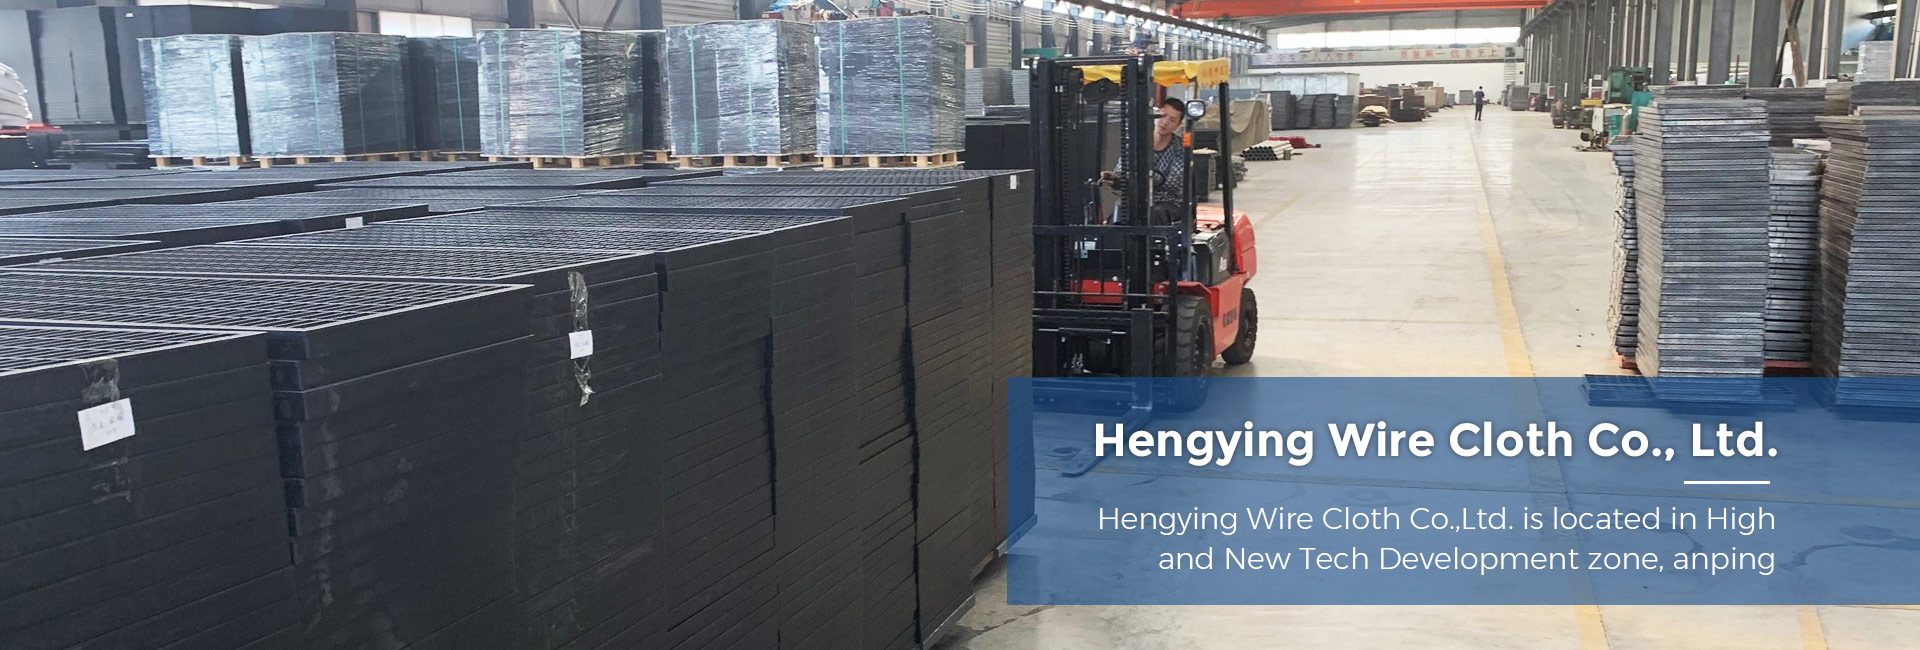 Hengying Wire Cloth Co.,Ltd.